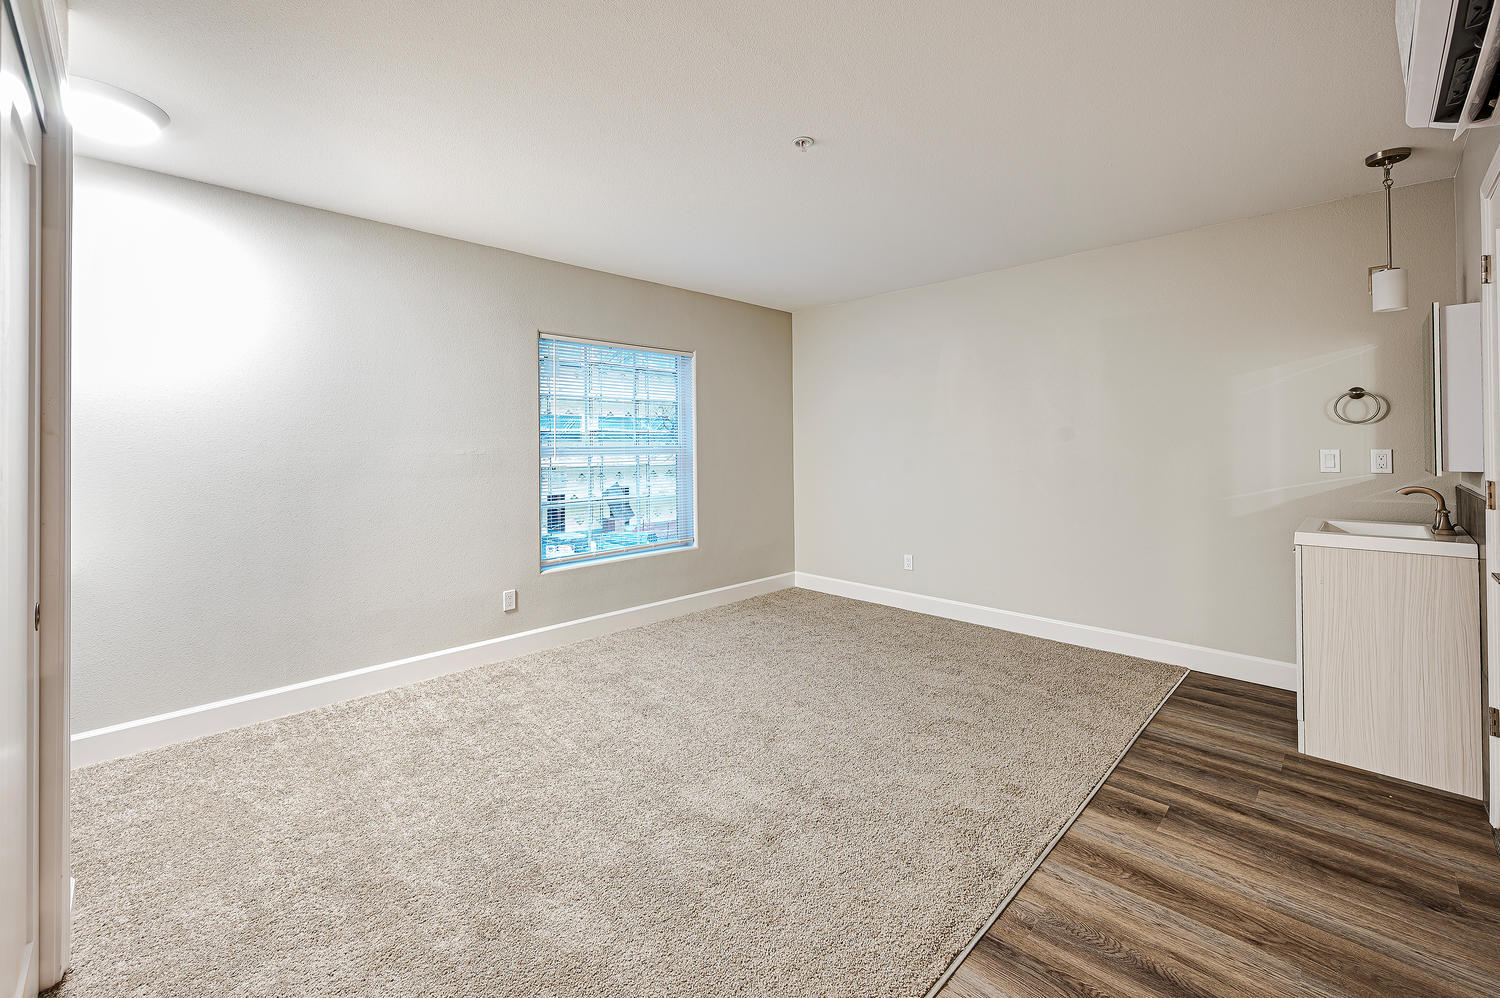 Room for Rent in Downtown Reno - For Rent